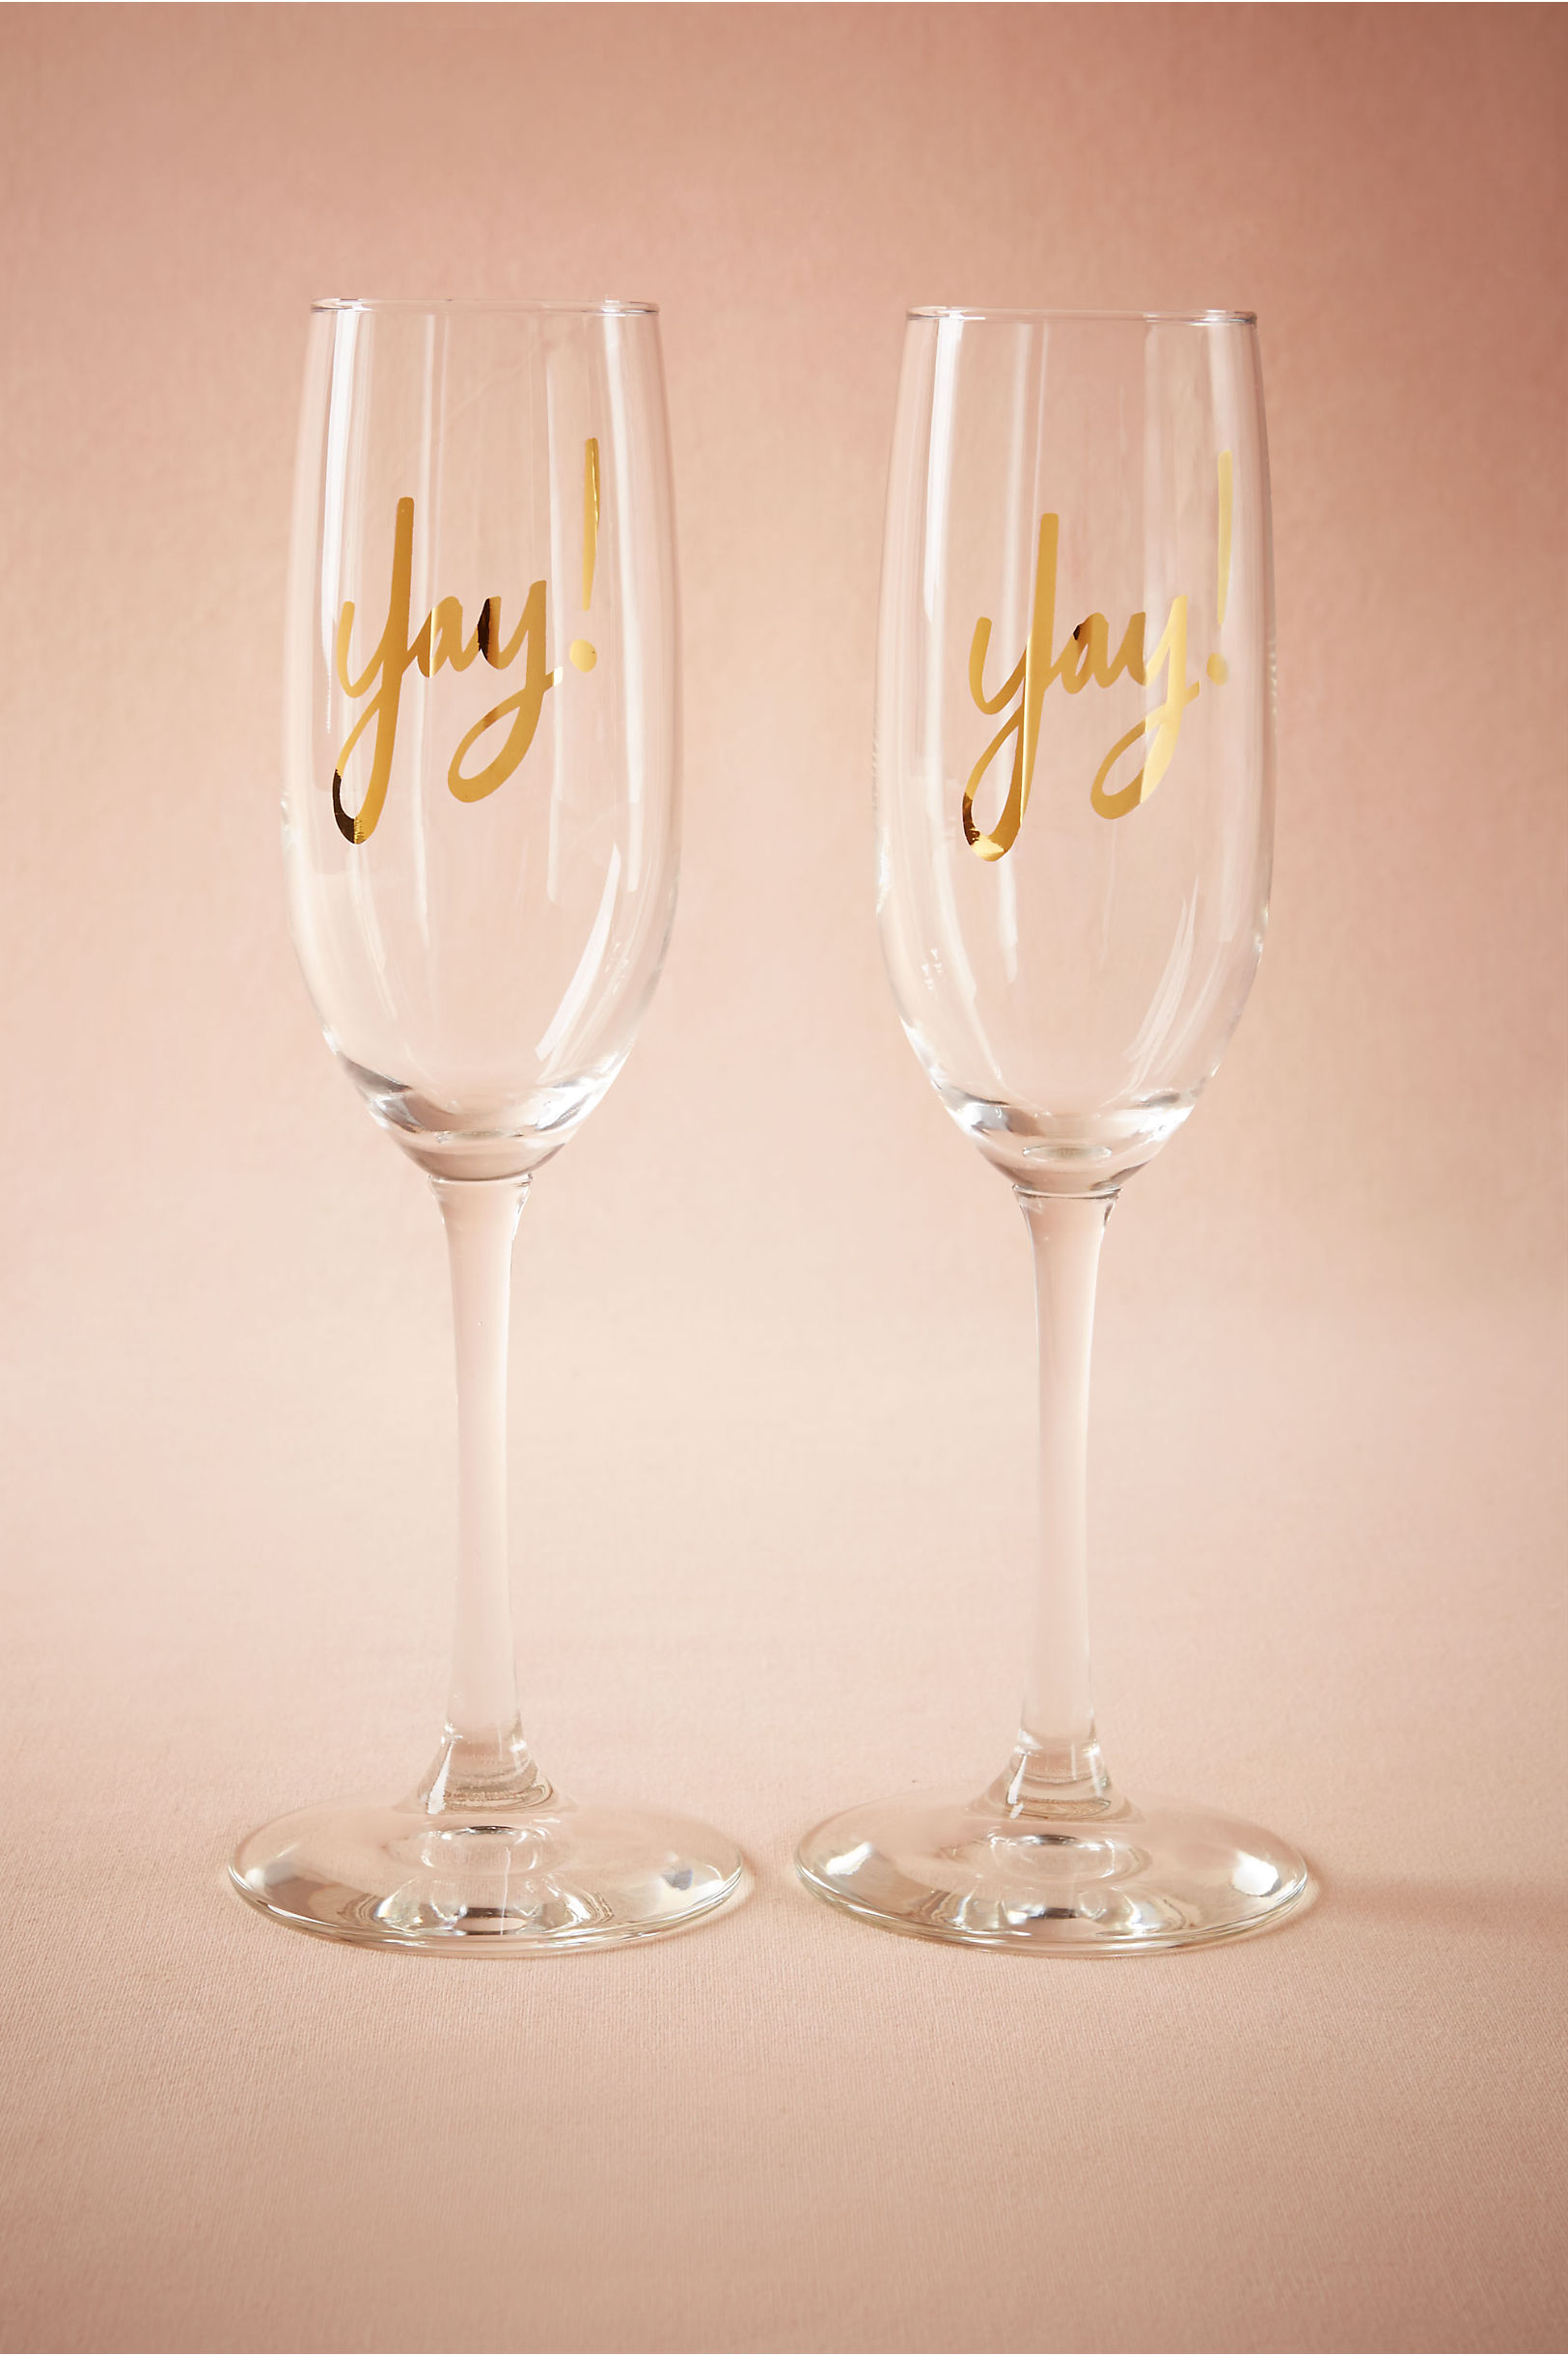 Yay Champagne Flutes 2 in Sale